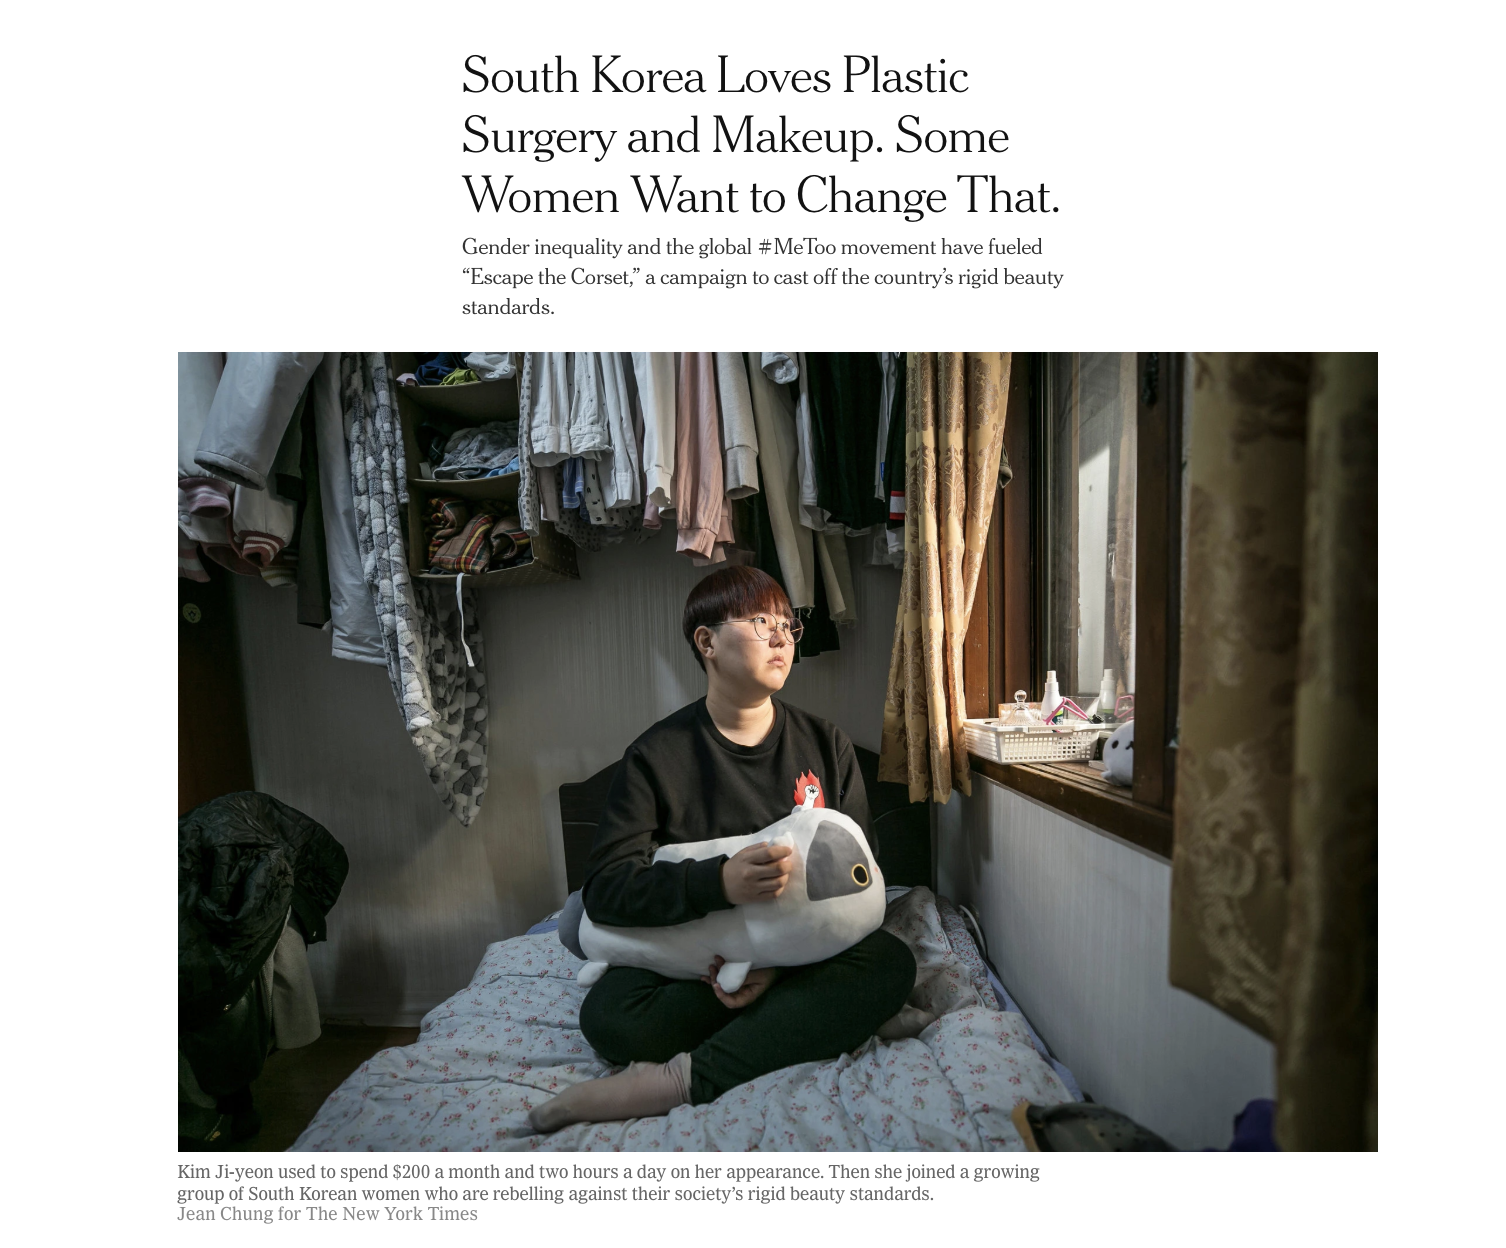 South Korean women rebel against their routines